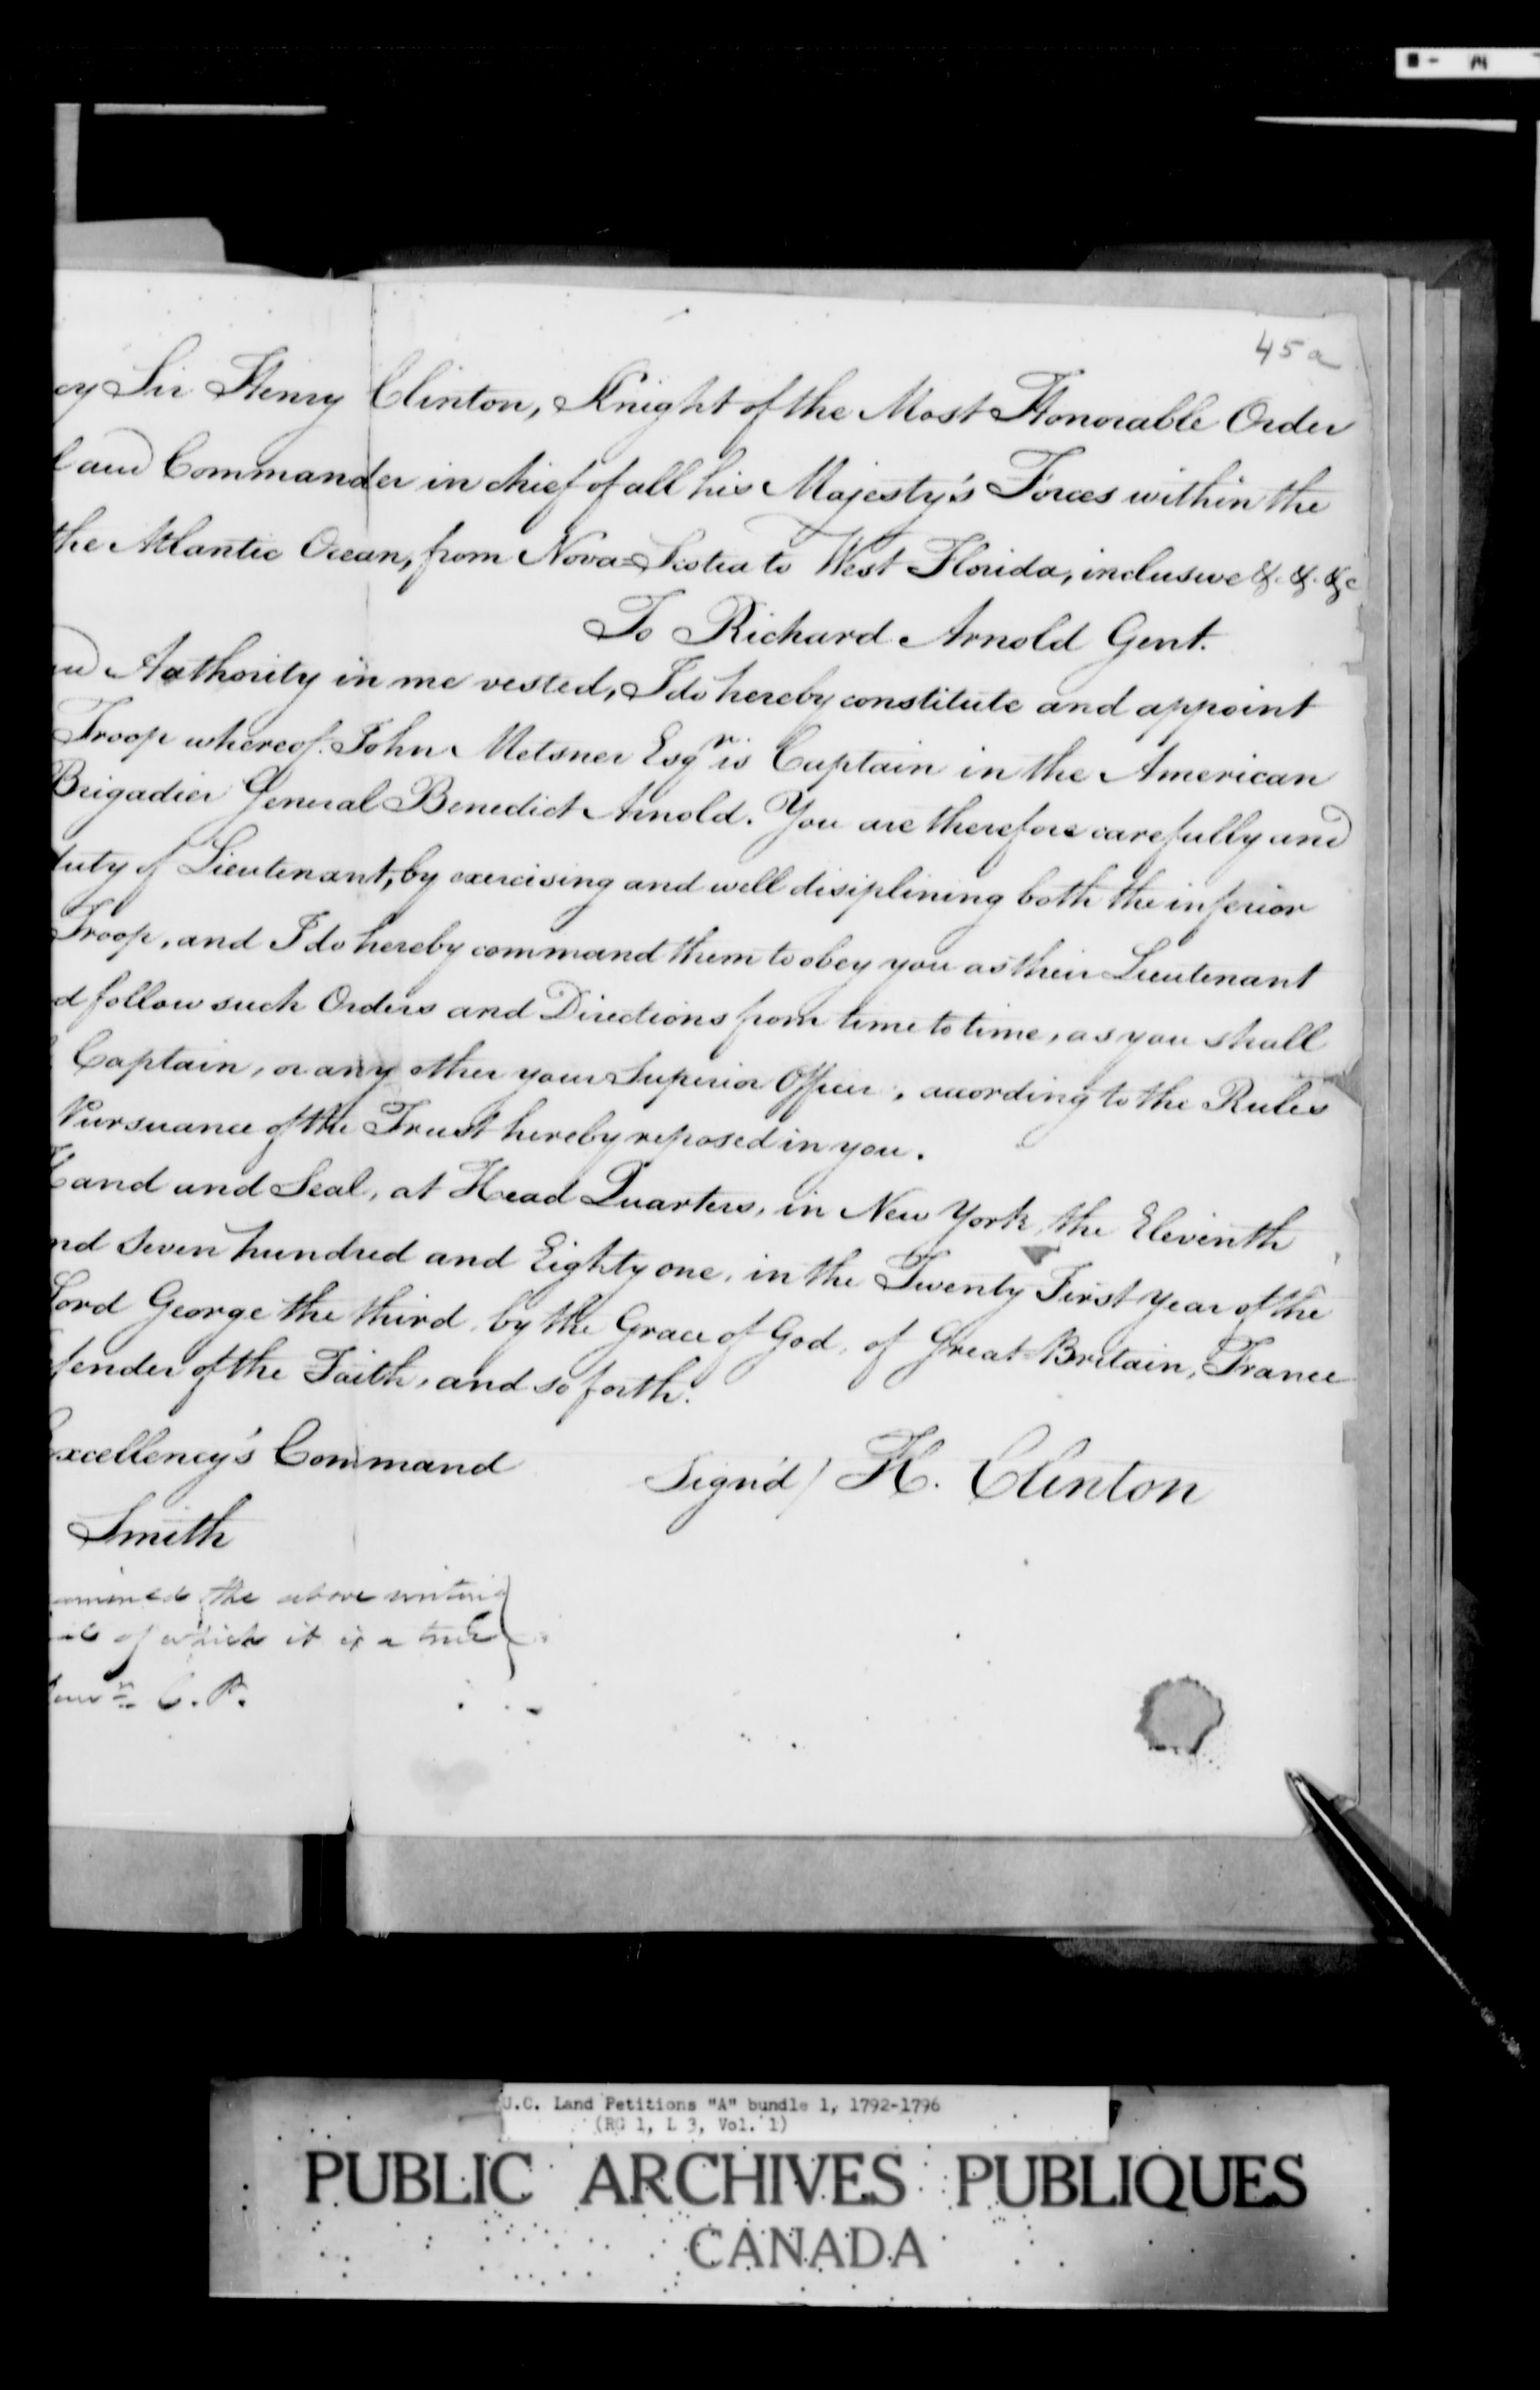 Title: Upper Canada Land Petitions (1763-1865) - Mikan Number: 205131 - Microform: c-1609